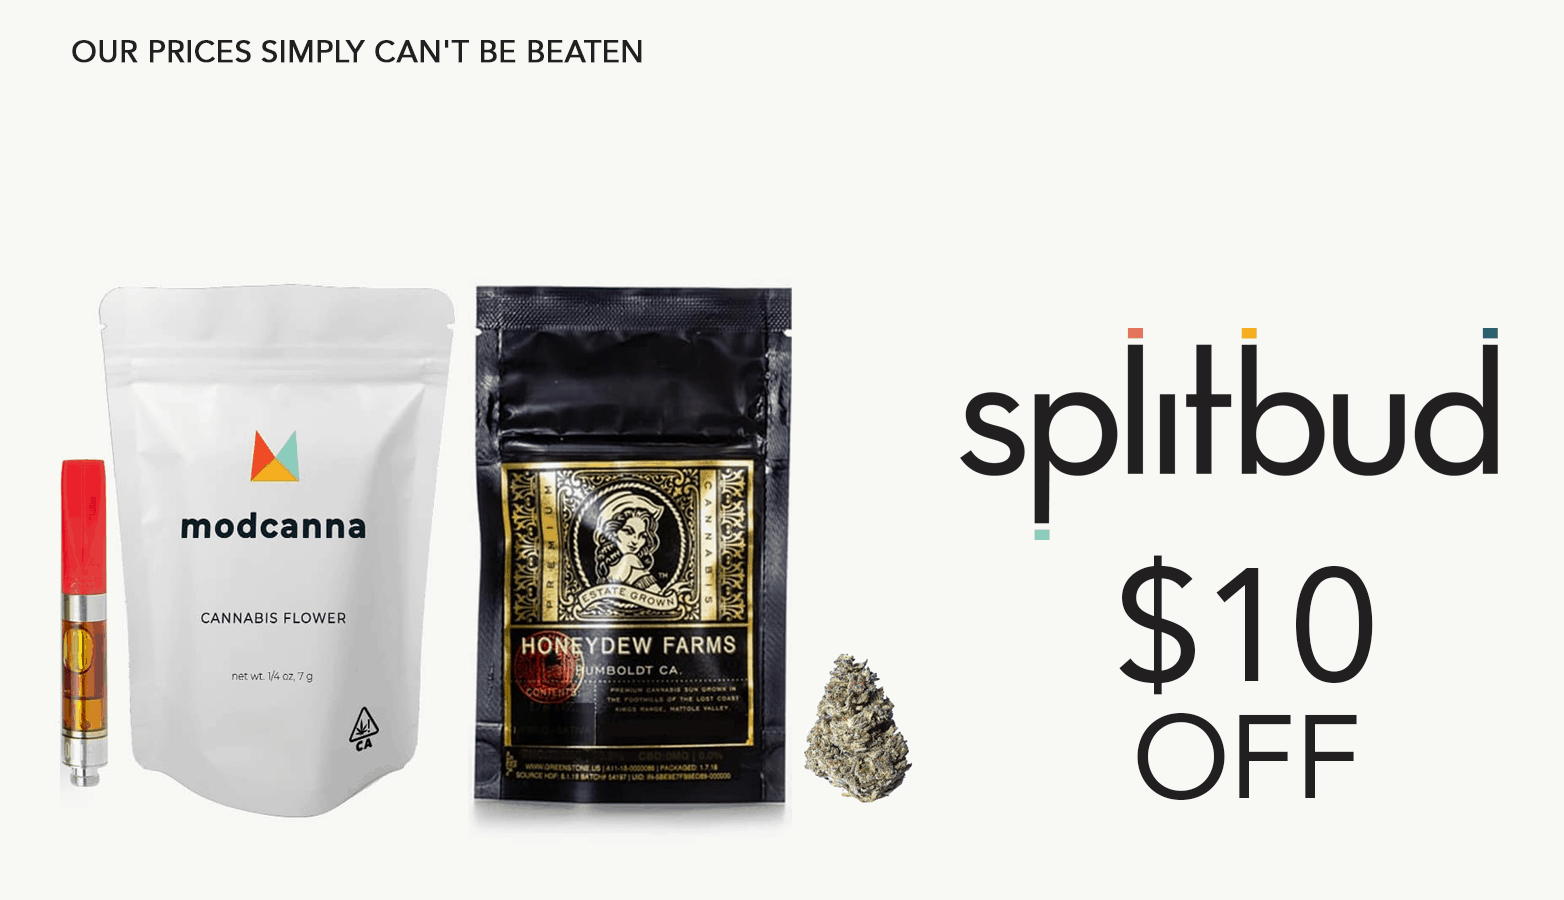 SplitBud CBD Coupon Code 10 Dollar Off Website